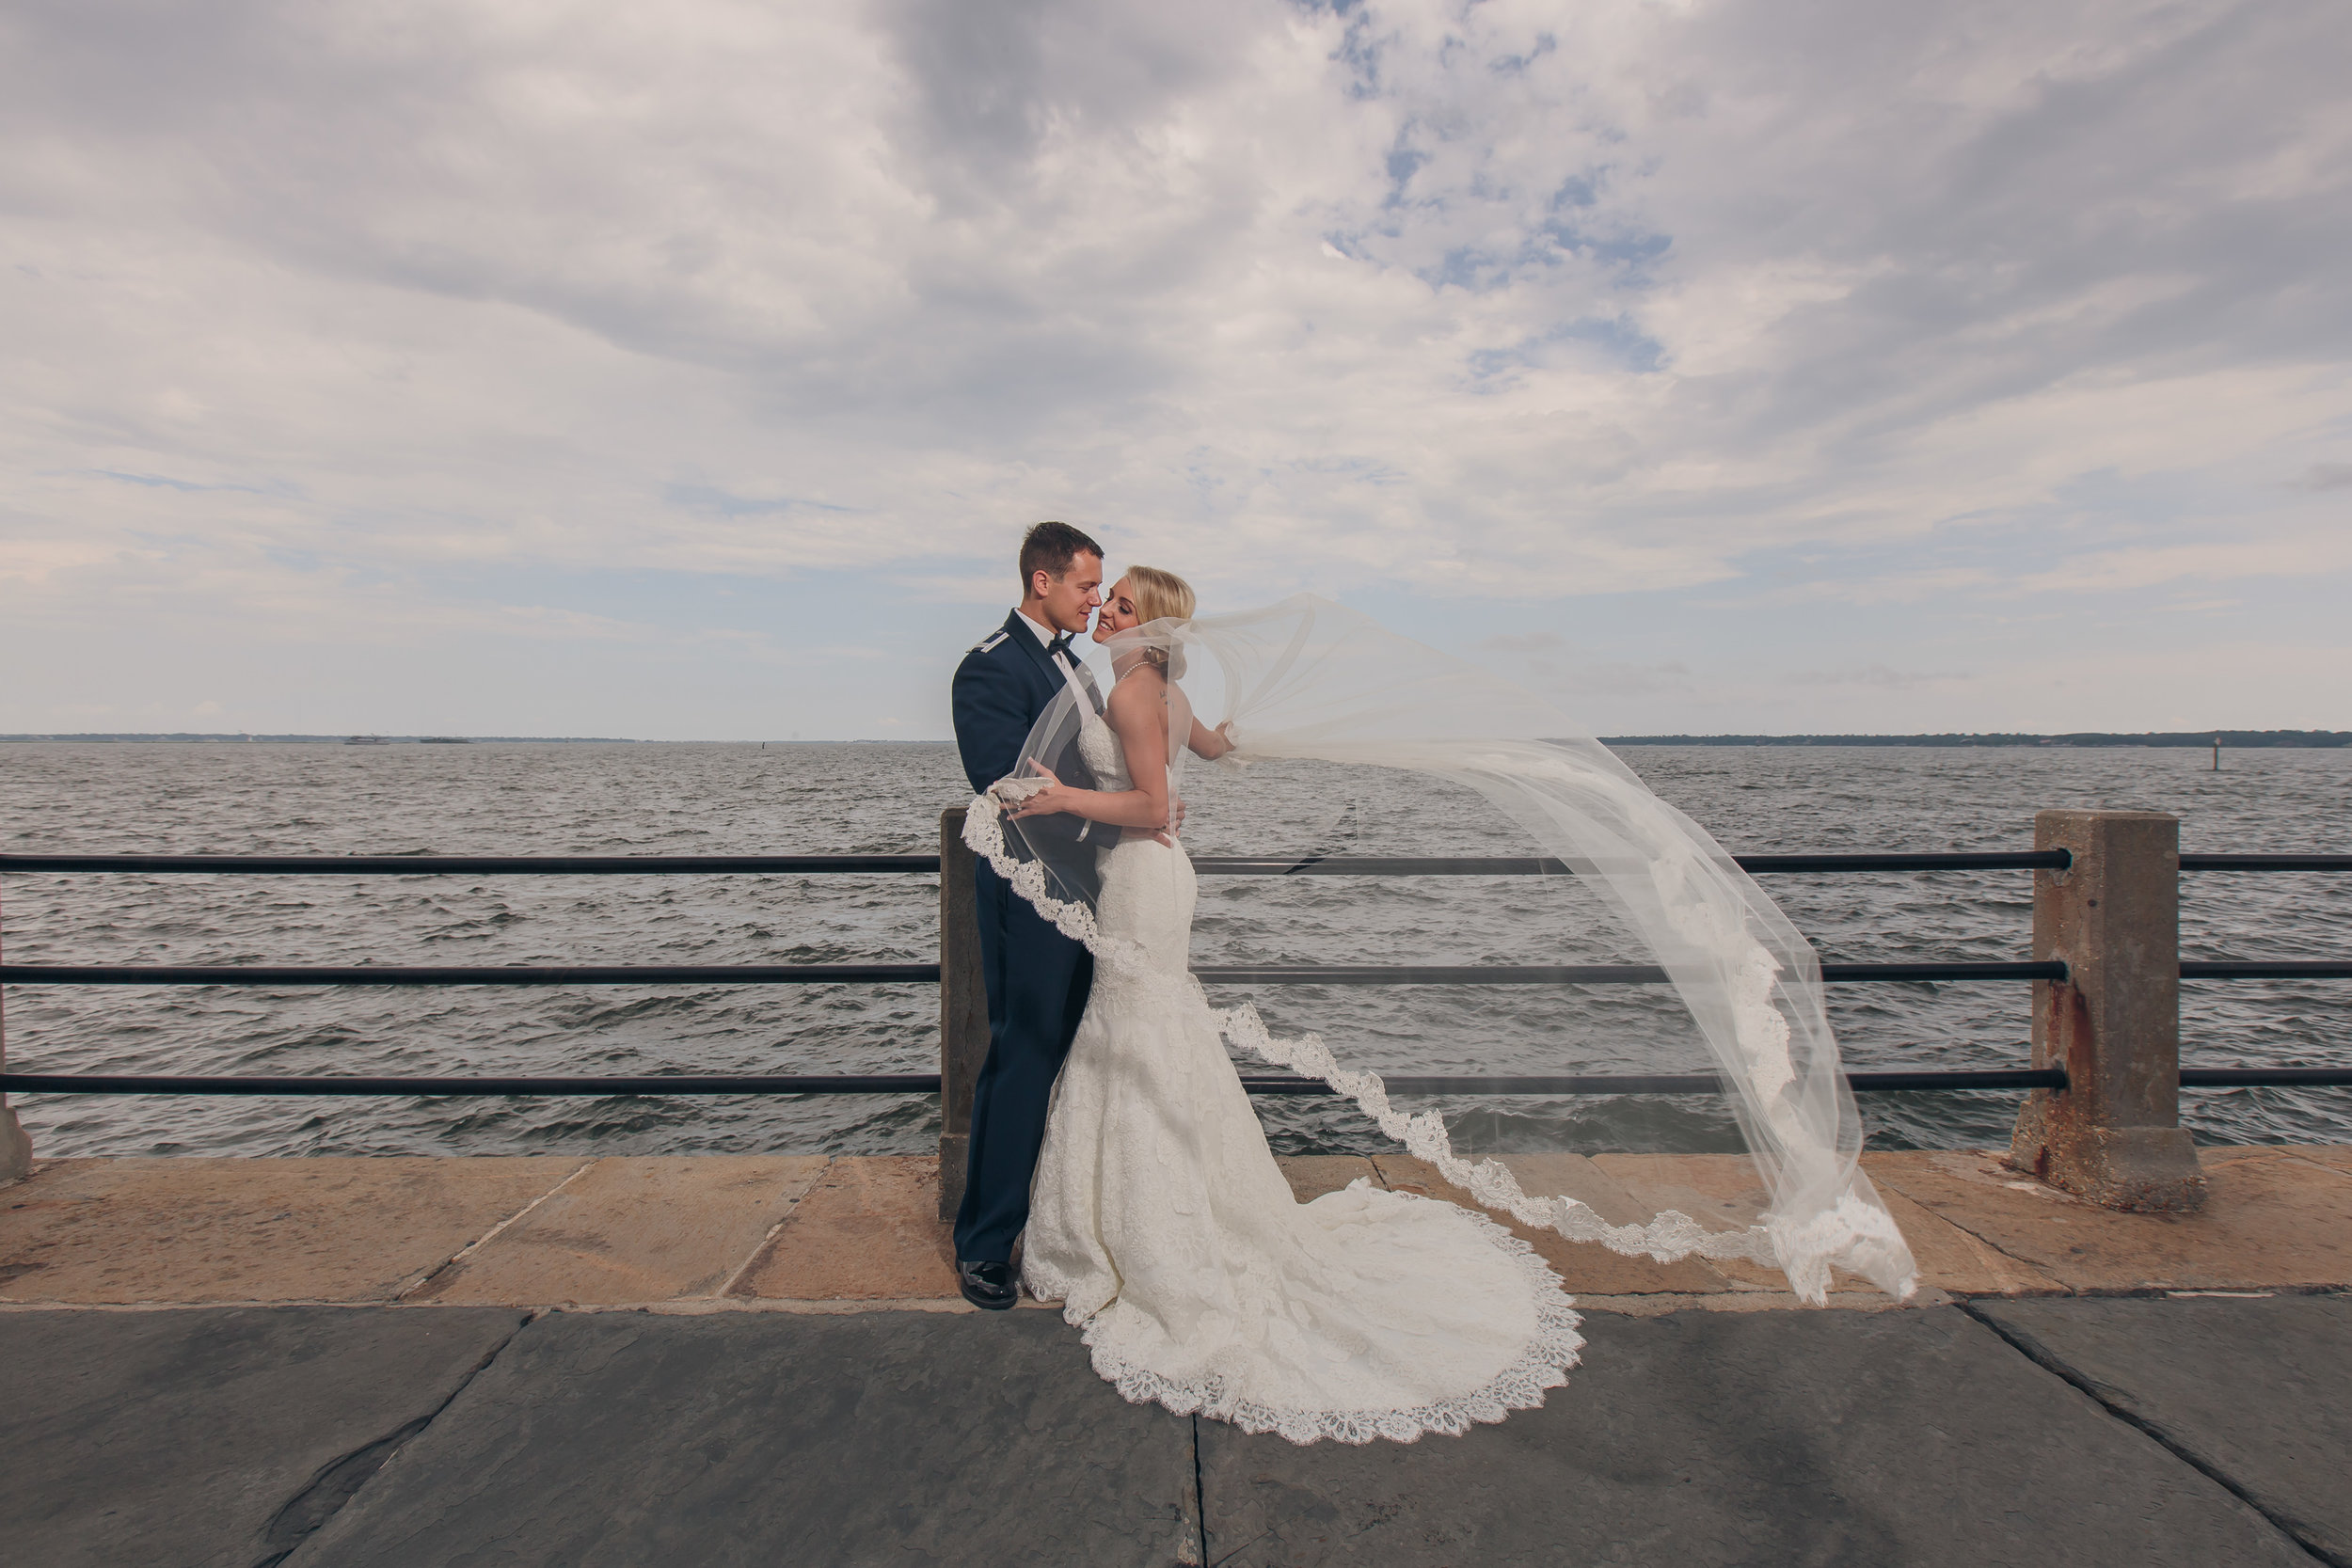 Seabrook_DiStefano_Richard_Bell_Photography_seabrook0539.jpg